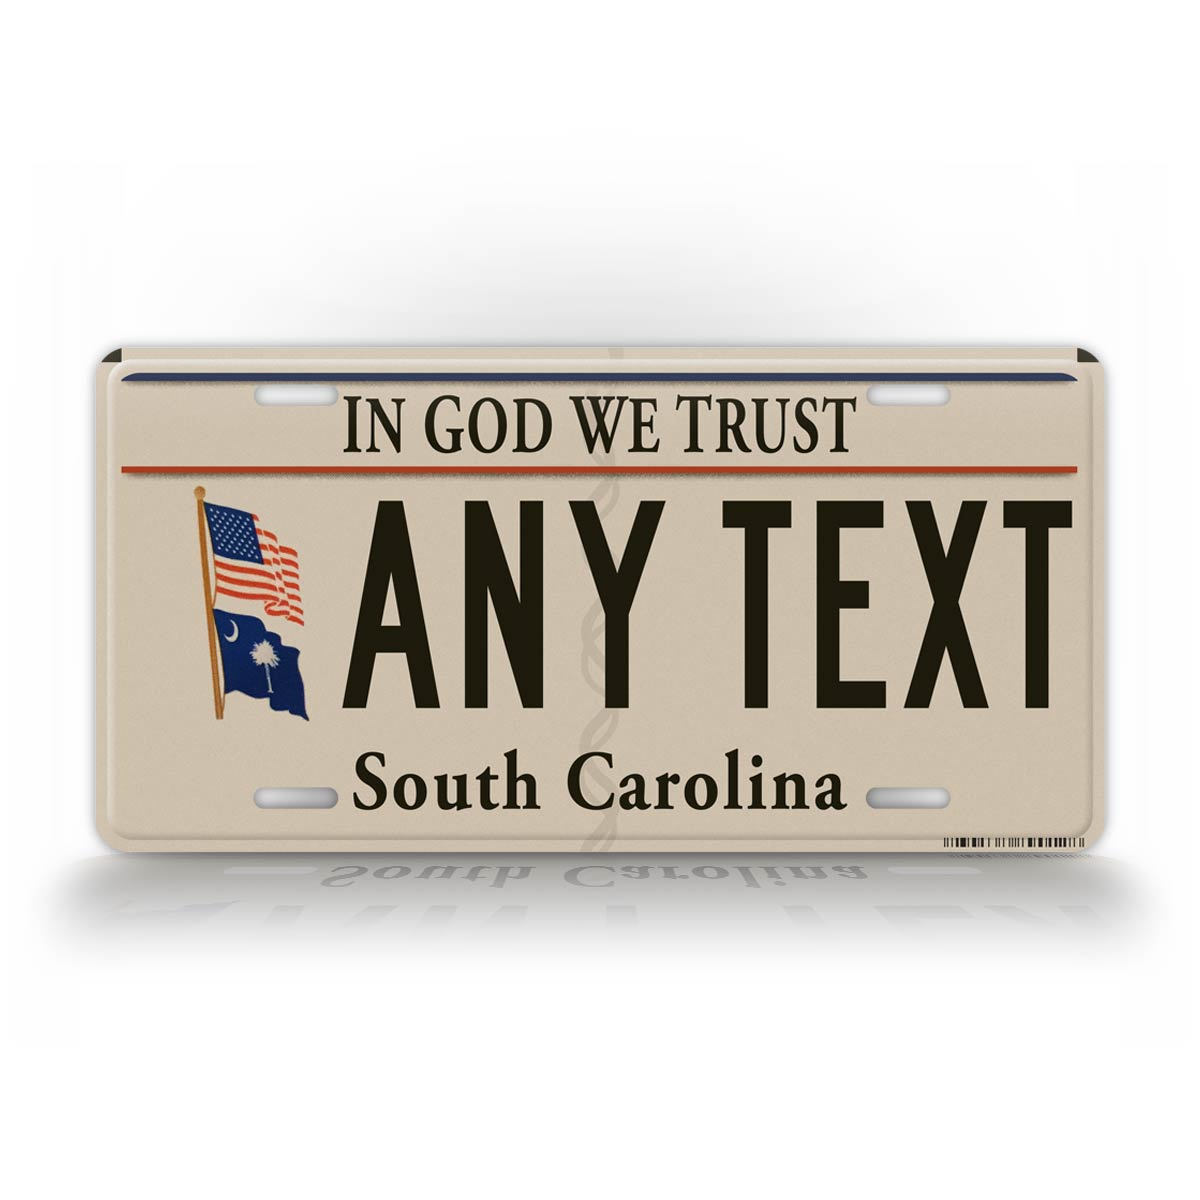 South Carolina Christian License Plate